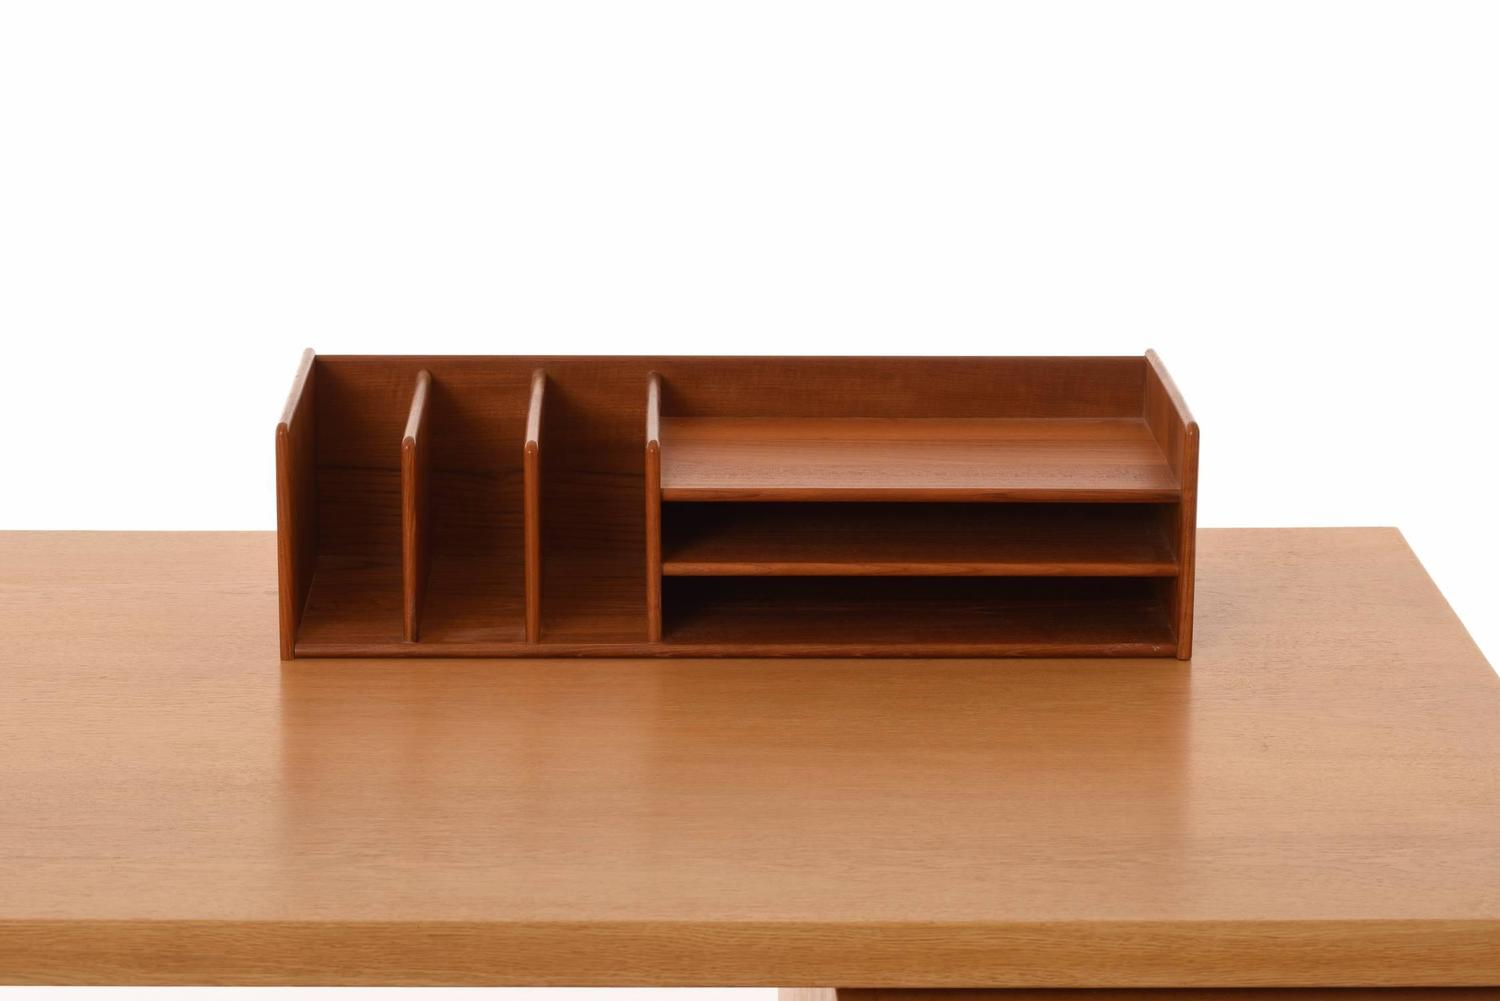 Danish modern desk organizer for sale at 1stdibs - Designer desk accessories and organizers ...